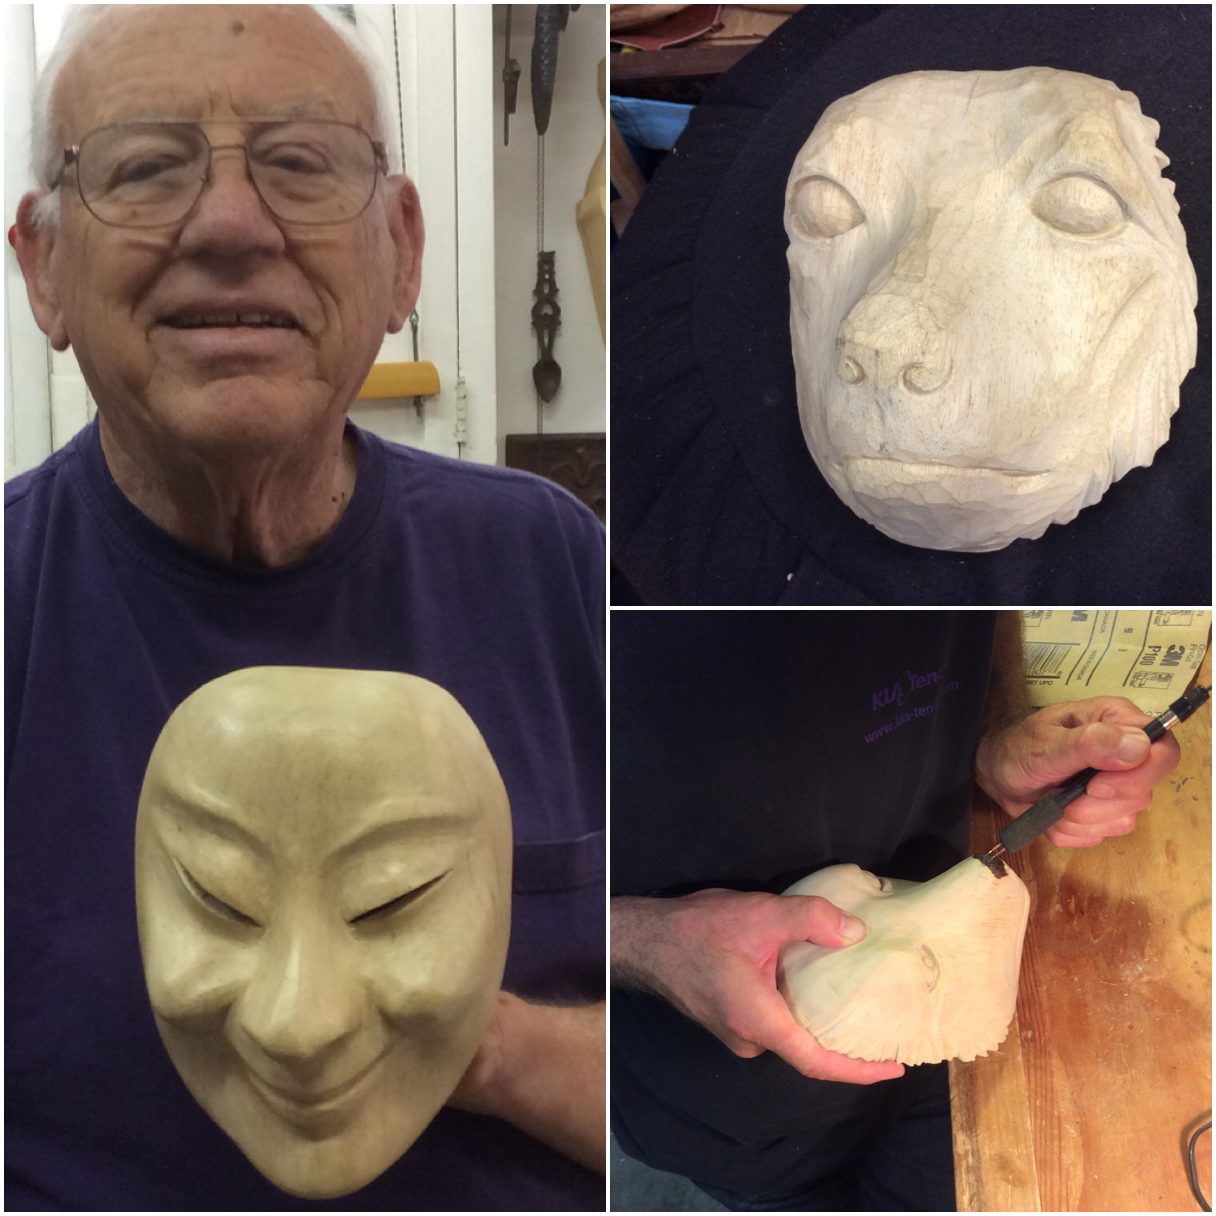 Art decided on a clear wax finish for his smiling fisherman mask. Patrick's mask is a portrait of his dog. He will add some leather floppy ears and he woodburned the nose and eyes.